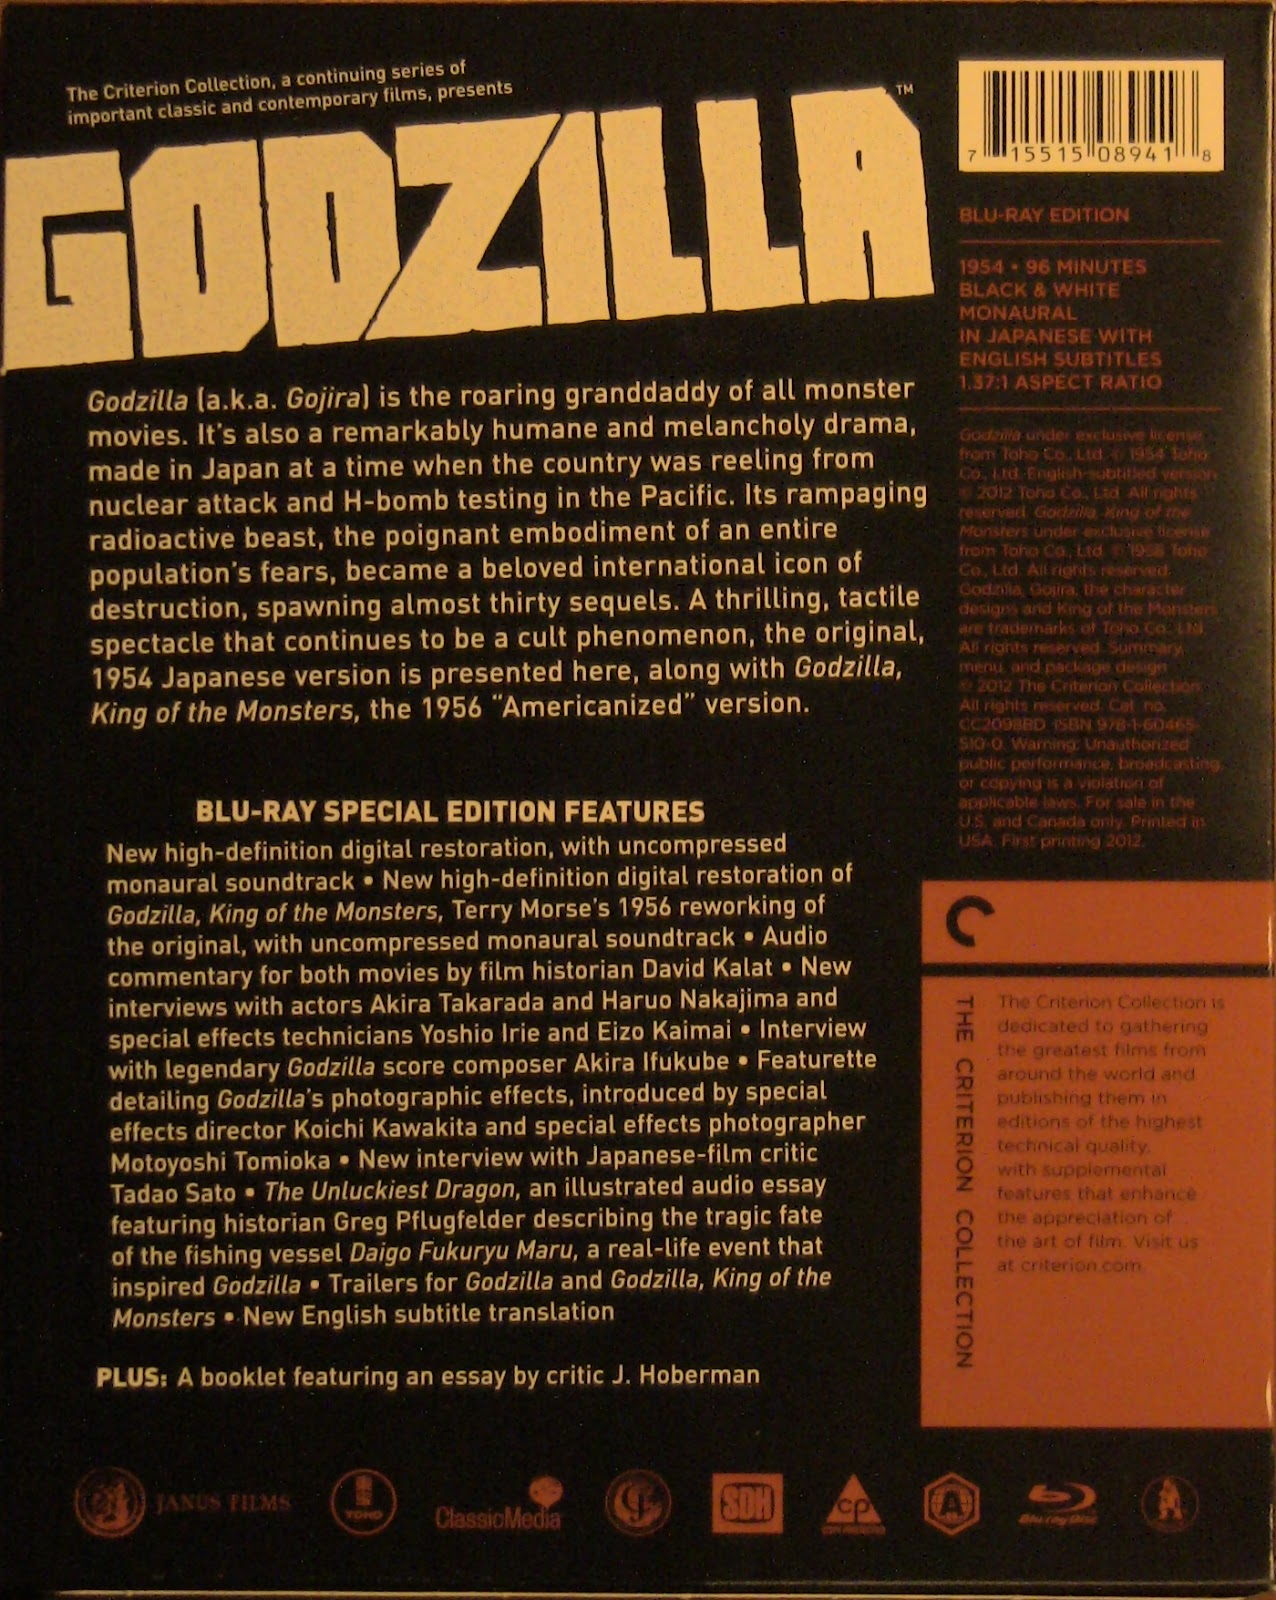 the cinemologists godzilla criterion blu ray review essay on the real life tragedy that inspired the film a look at godzilla s standing in ese culture at the time of the film s release